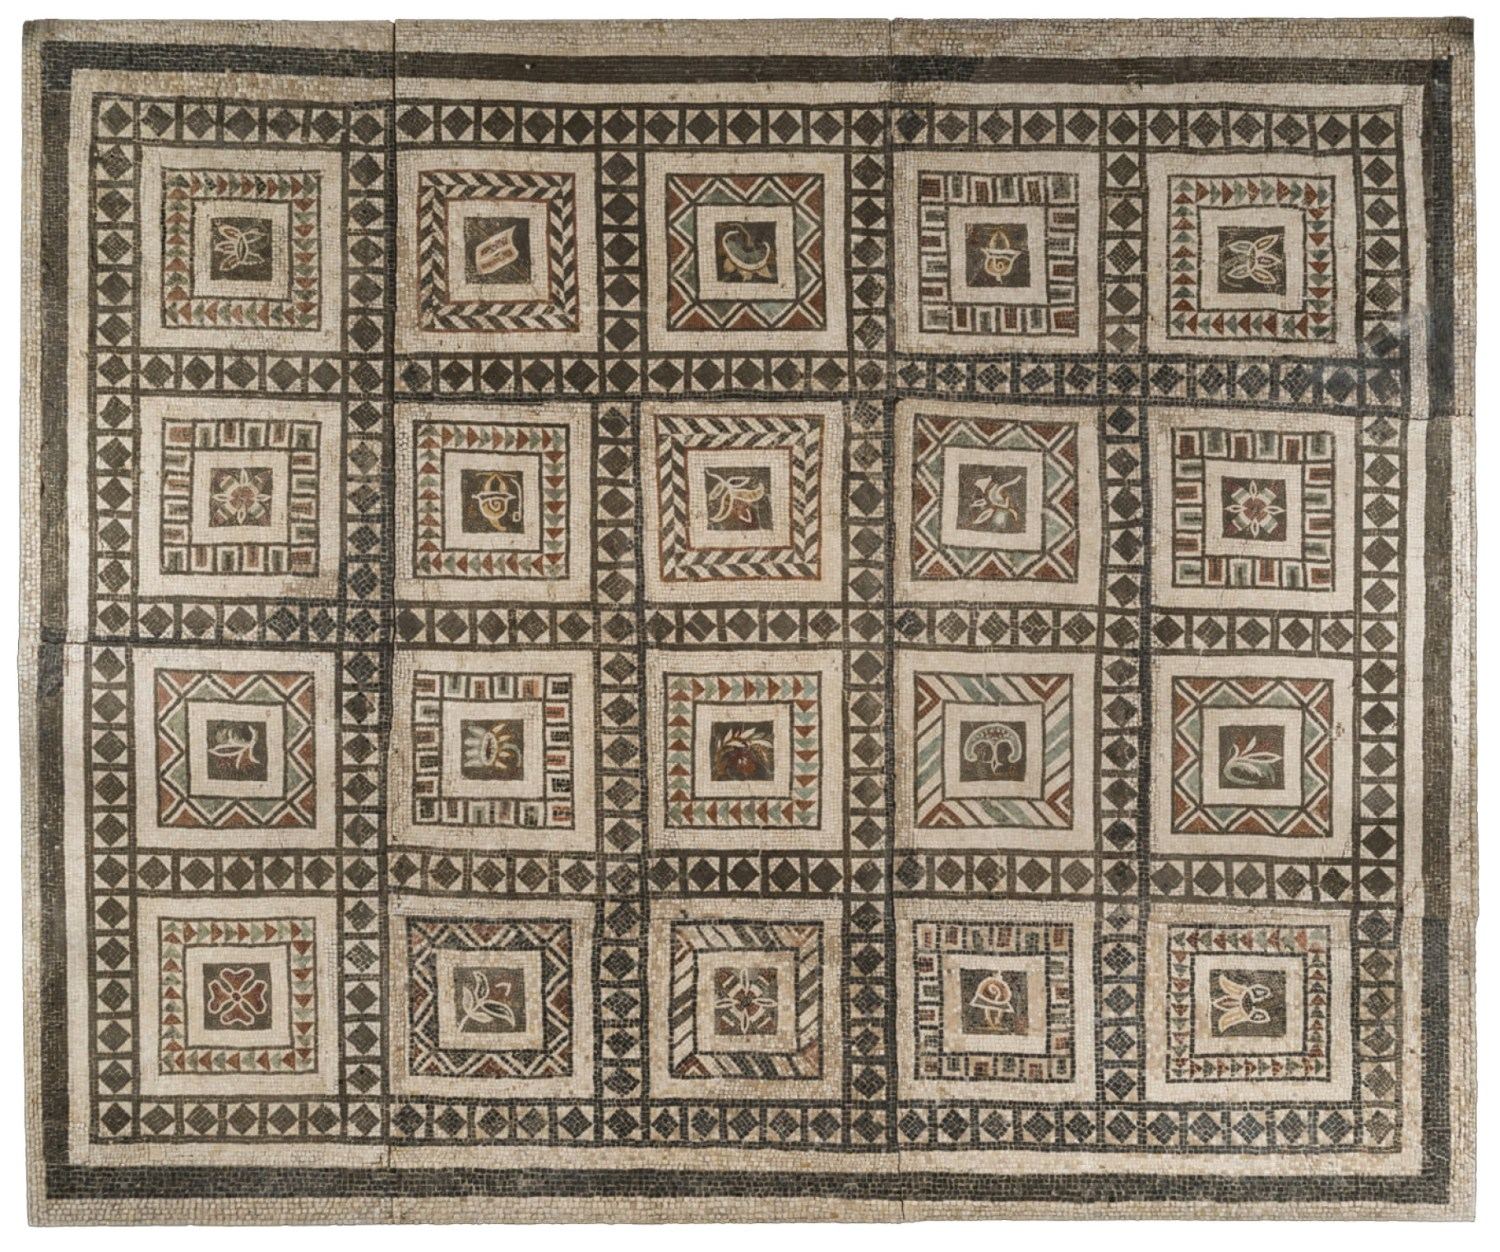 ABOVE Polychrome floor-mosaic with 20 sections, each with a different motif, found in 1886 during the demolition of the Villa Casali. Mid 1st century AD.